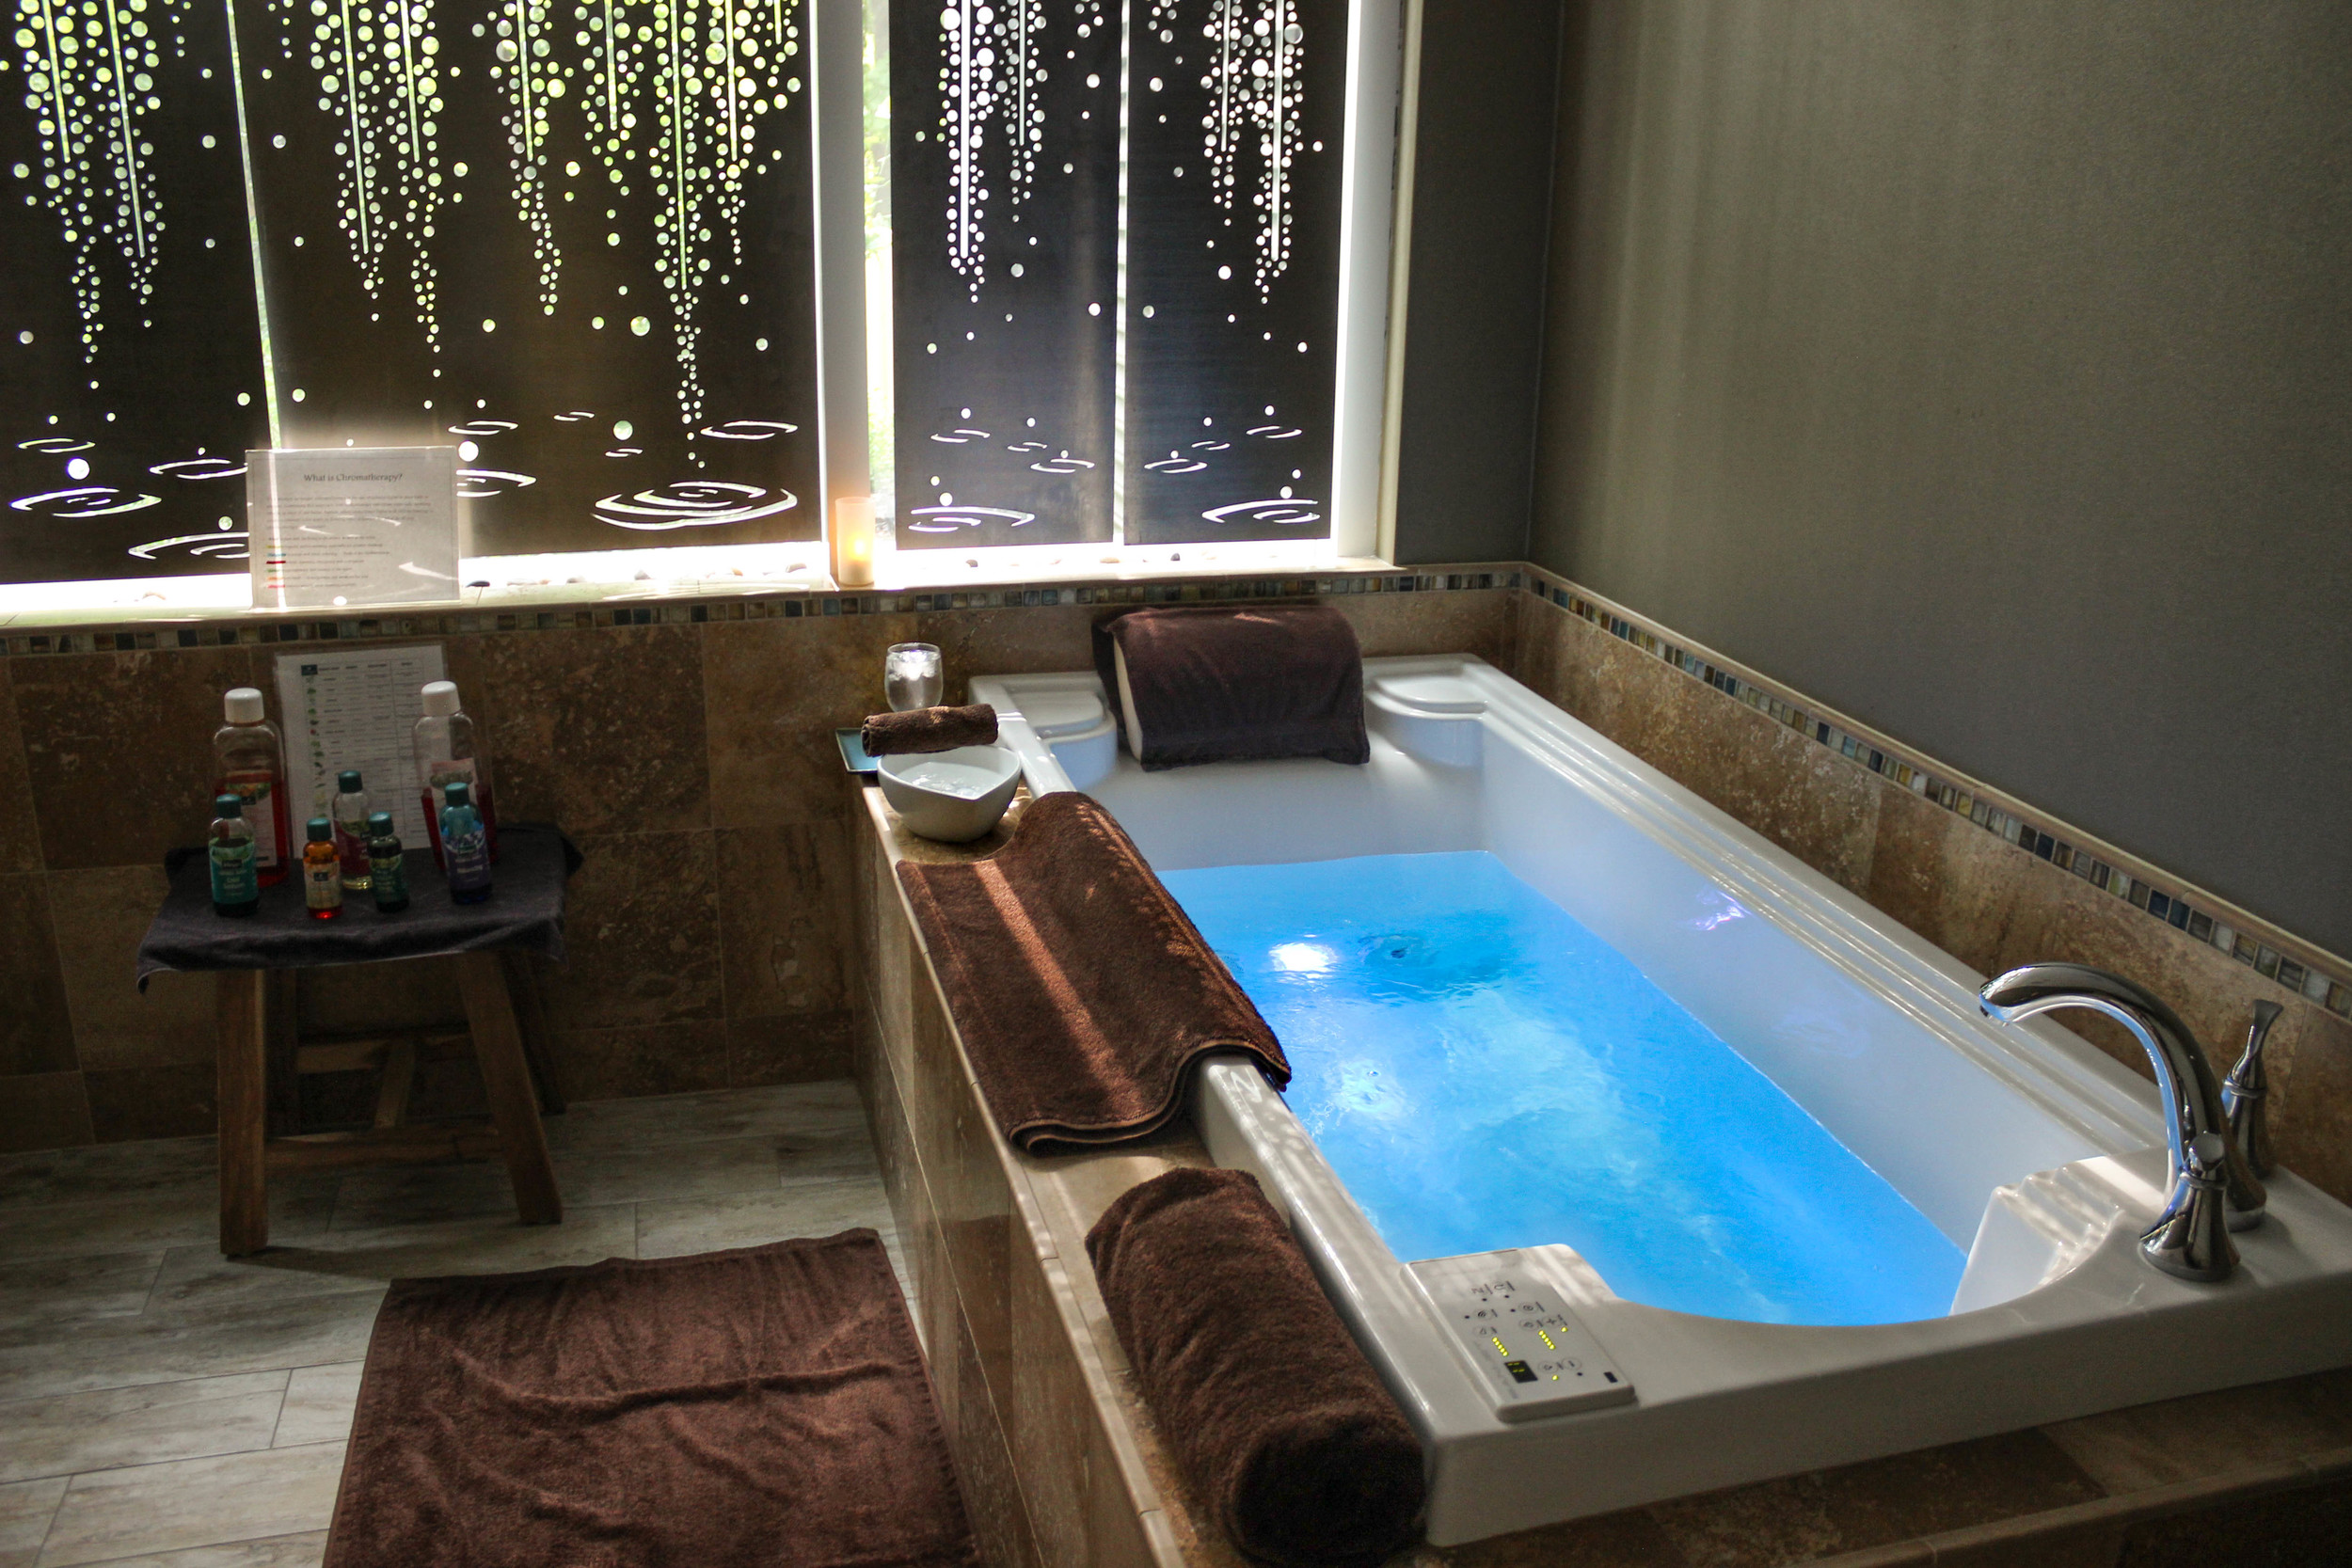 COMPLEXIONS SPA - SARATOGA SPRINGS, NY